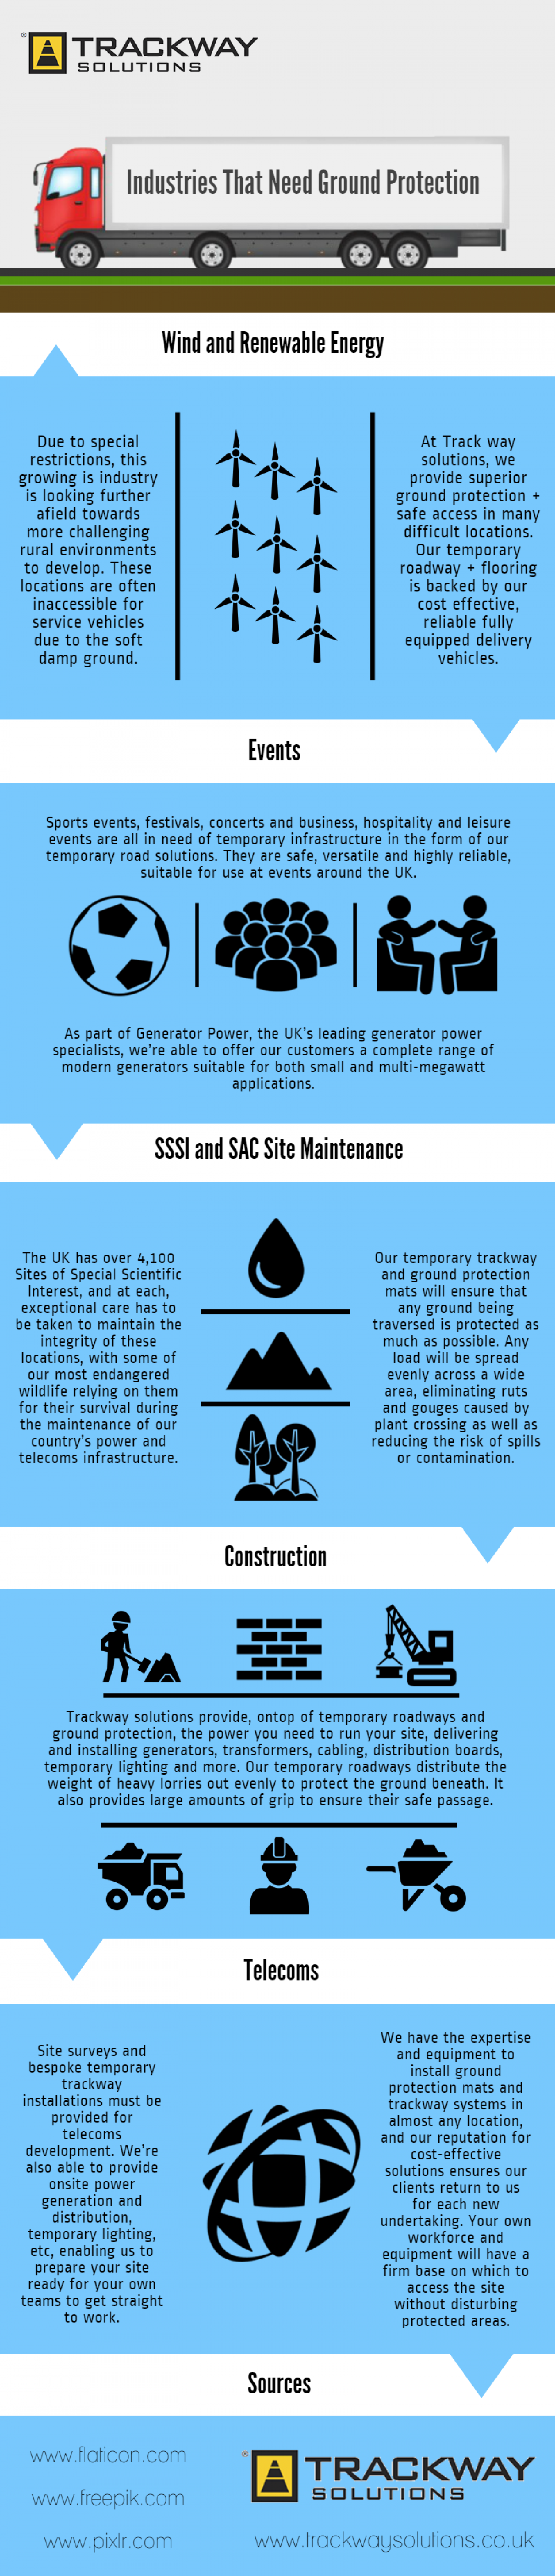 Industries That Need Ground Protection Infographic